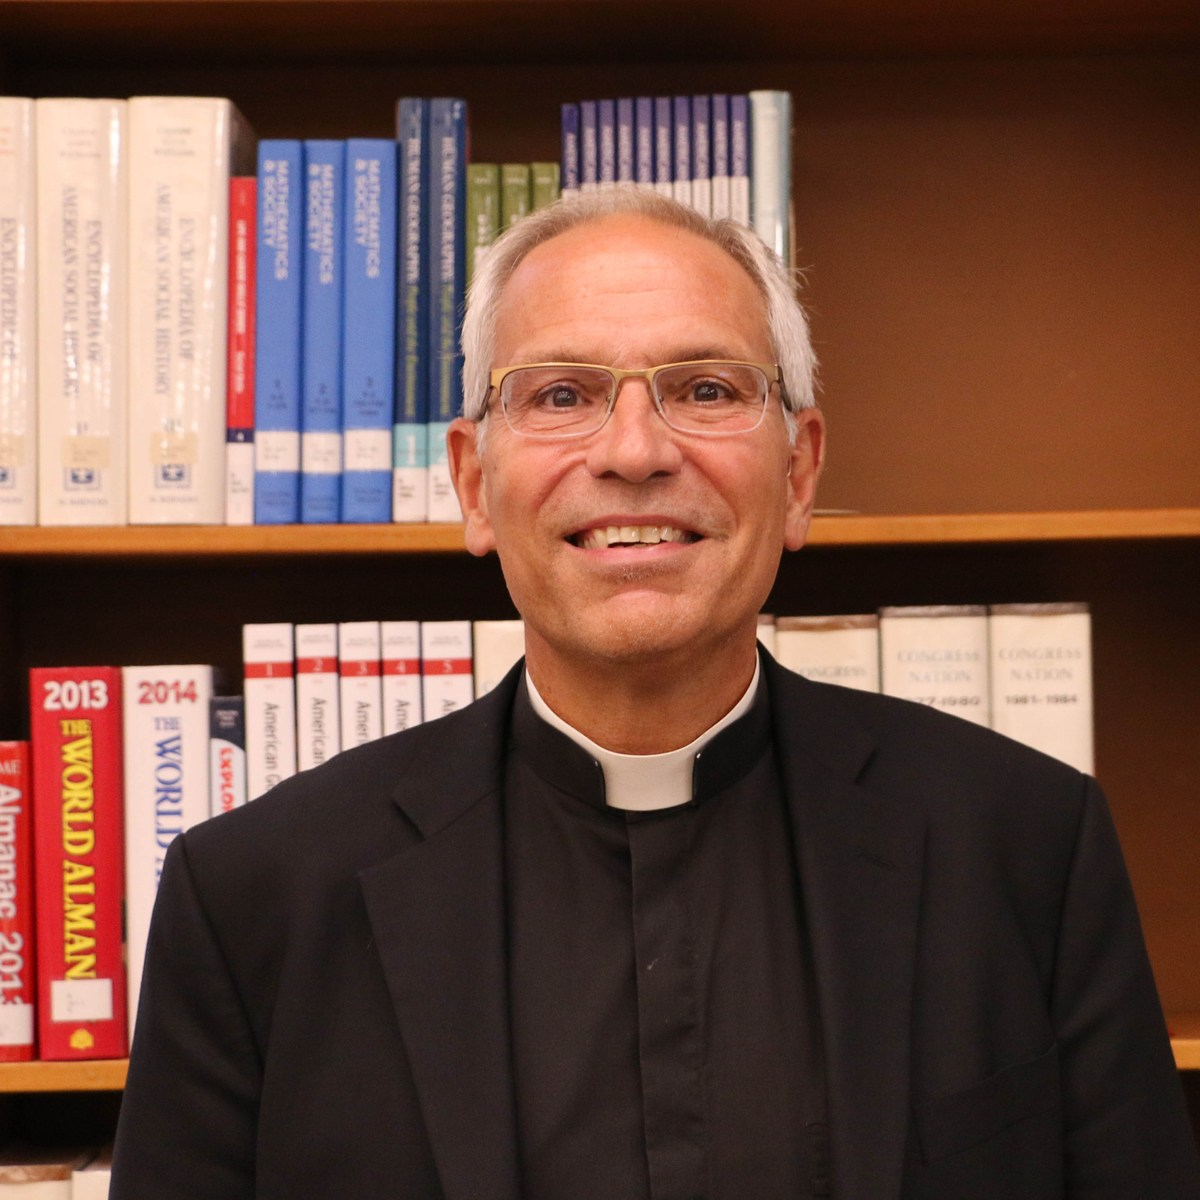 Fr. Peter Hahn '74's Profile Photo